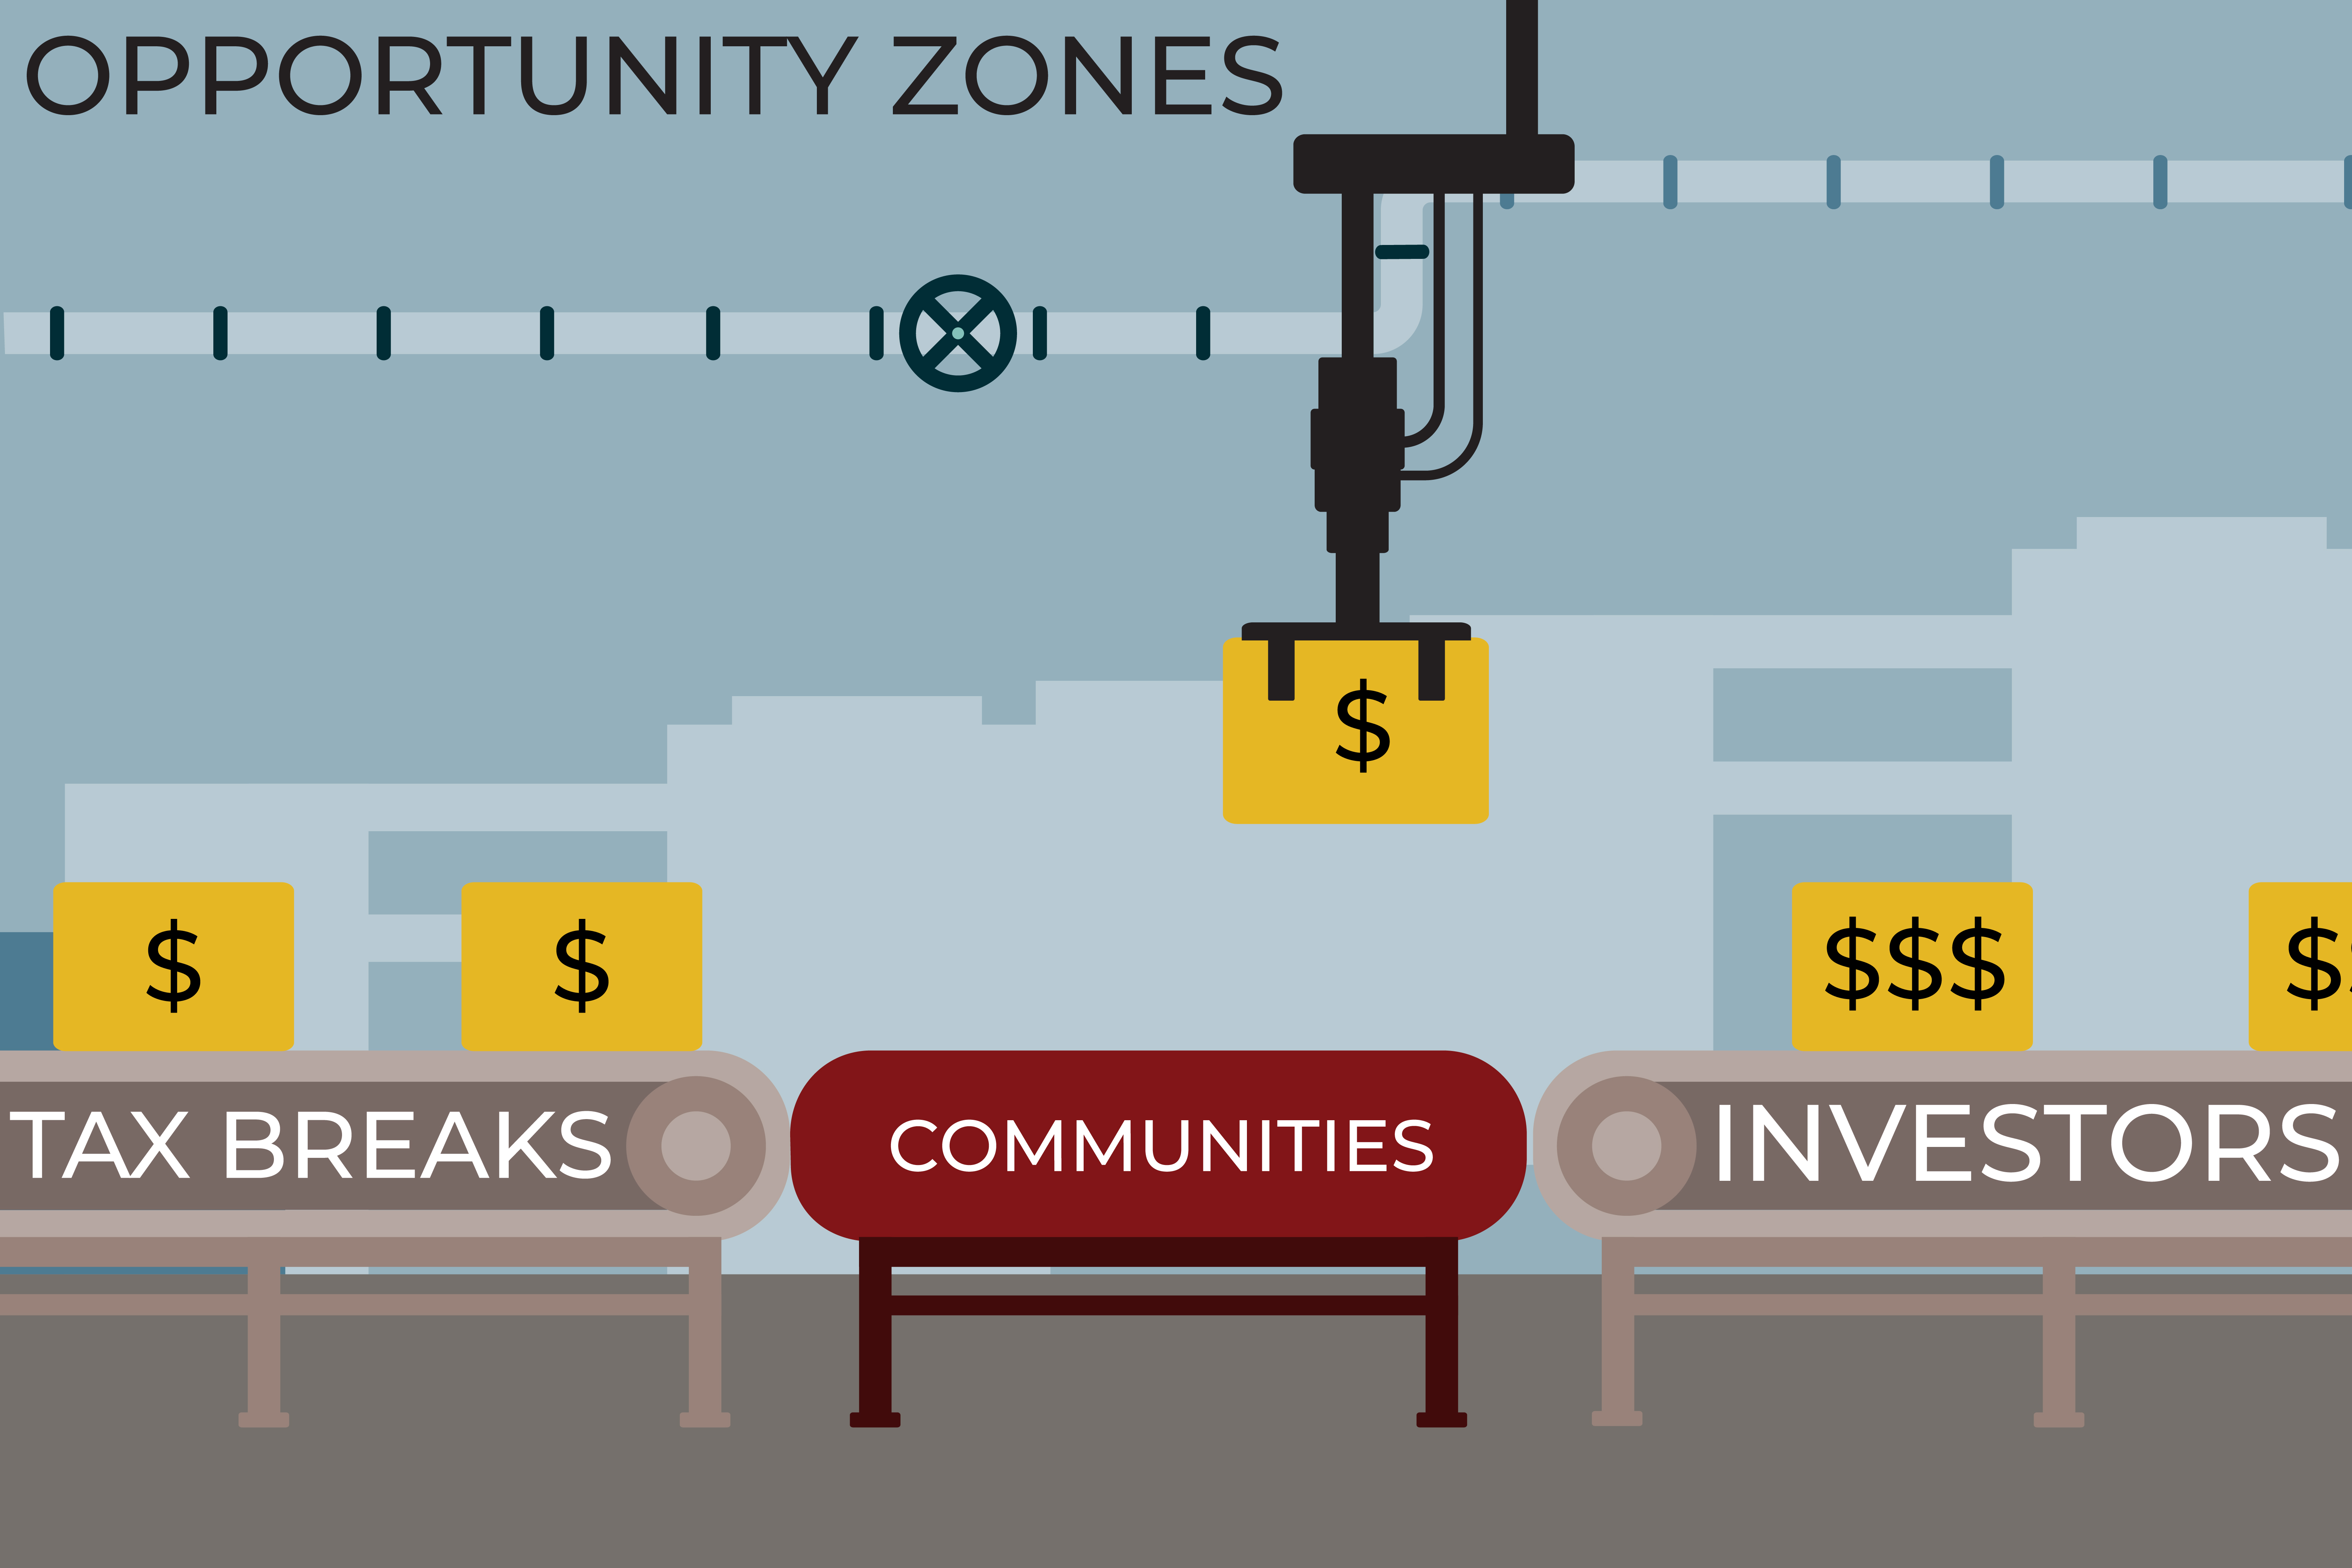 New ITEP Reports Call for the Repeal of Opportunity Zones and Urge States to Decouple